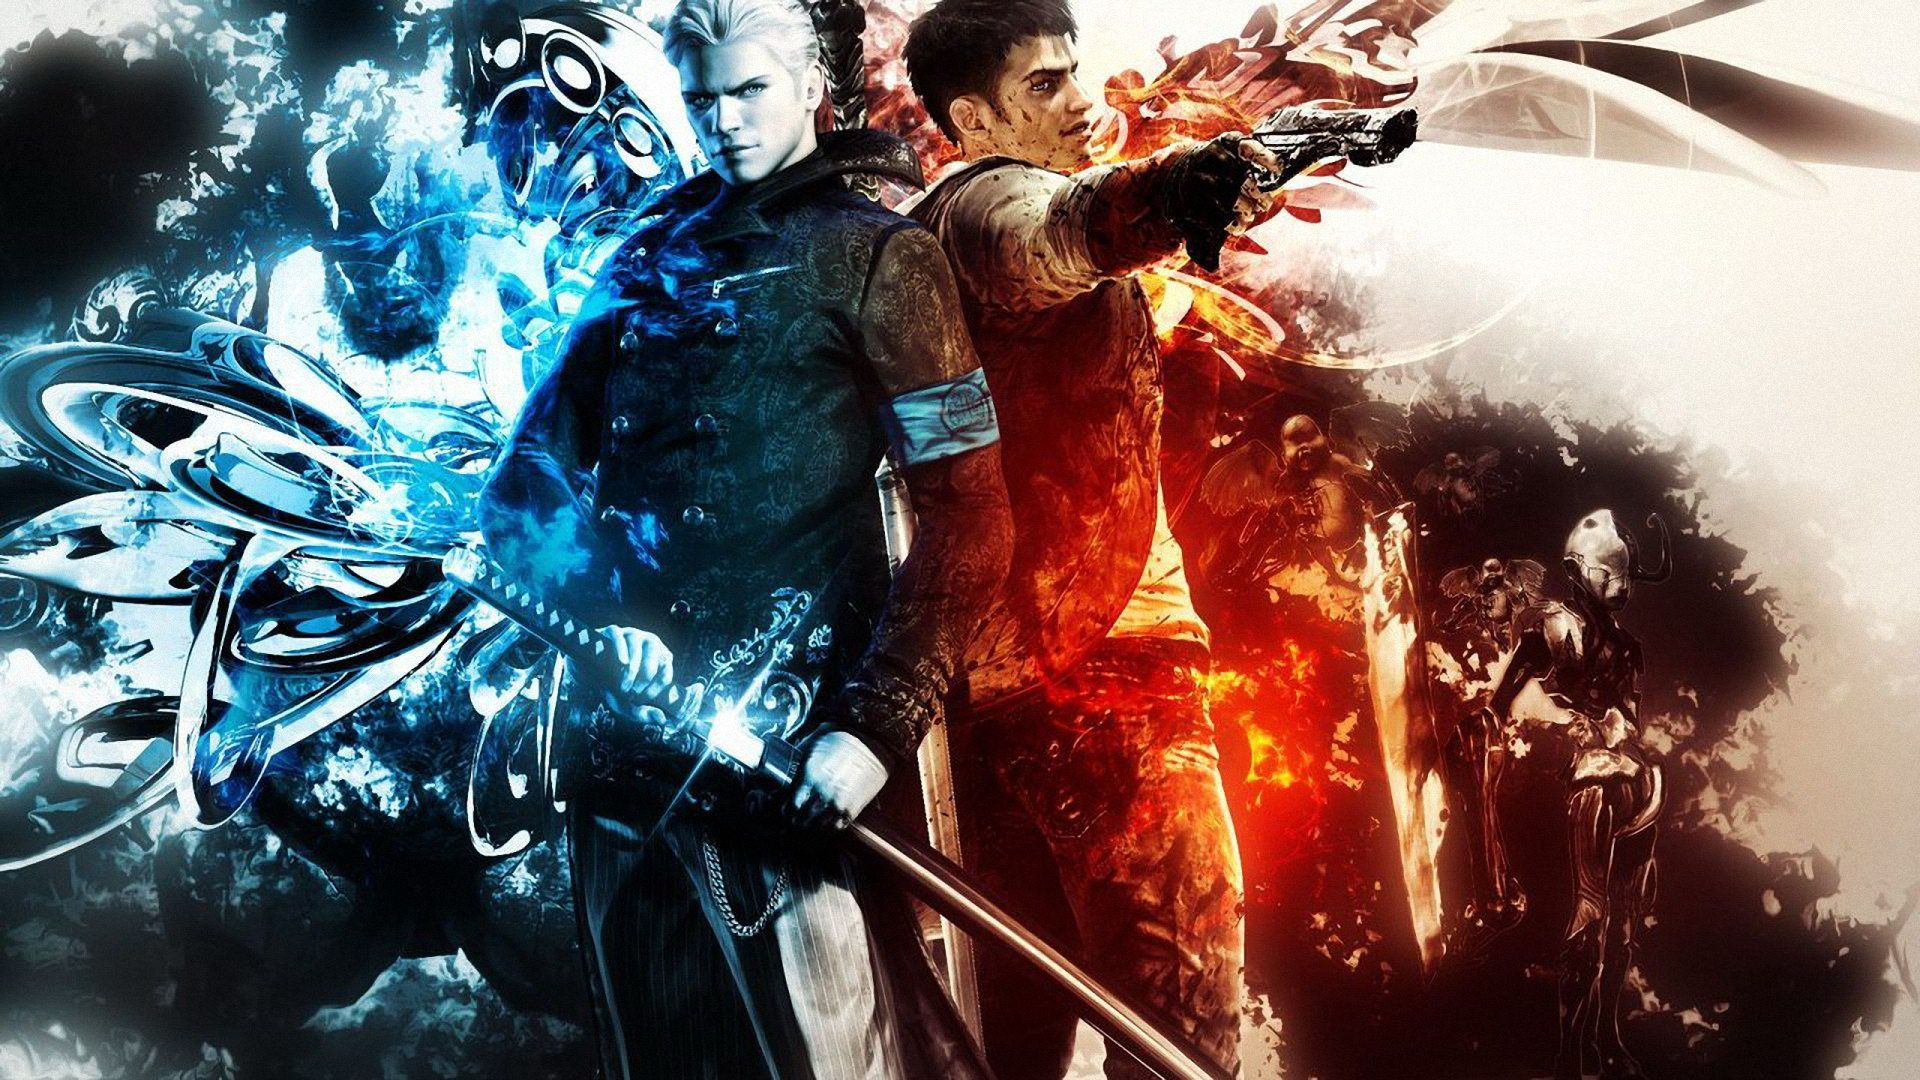 Devil May Cry 5 Wallpapers - Wallpaper Cave